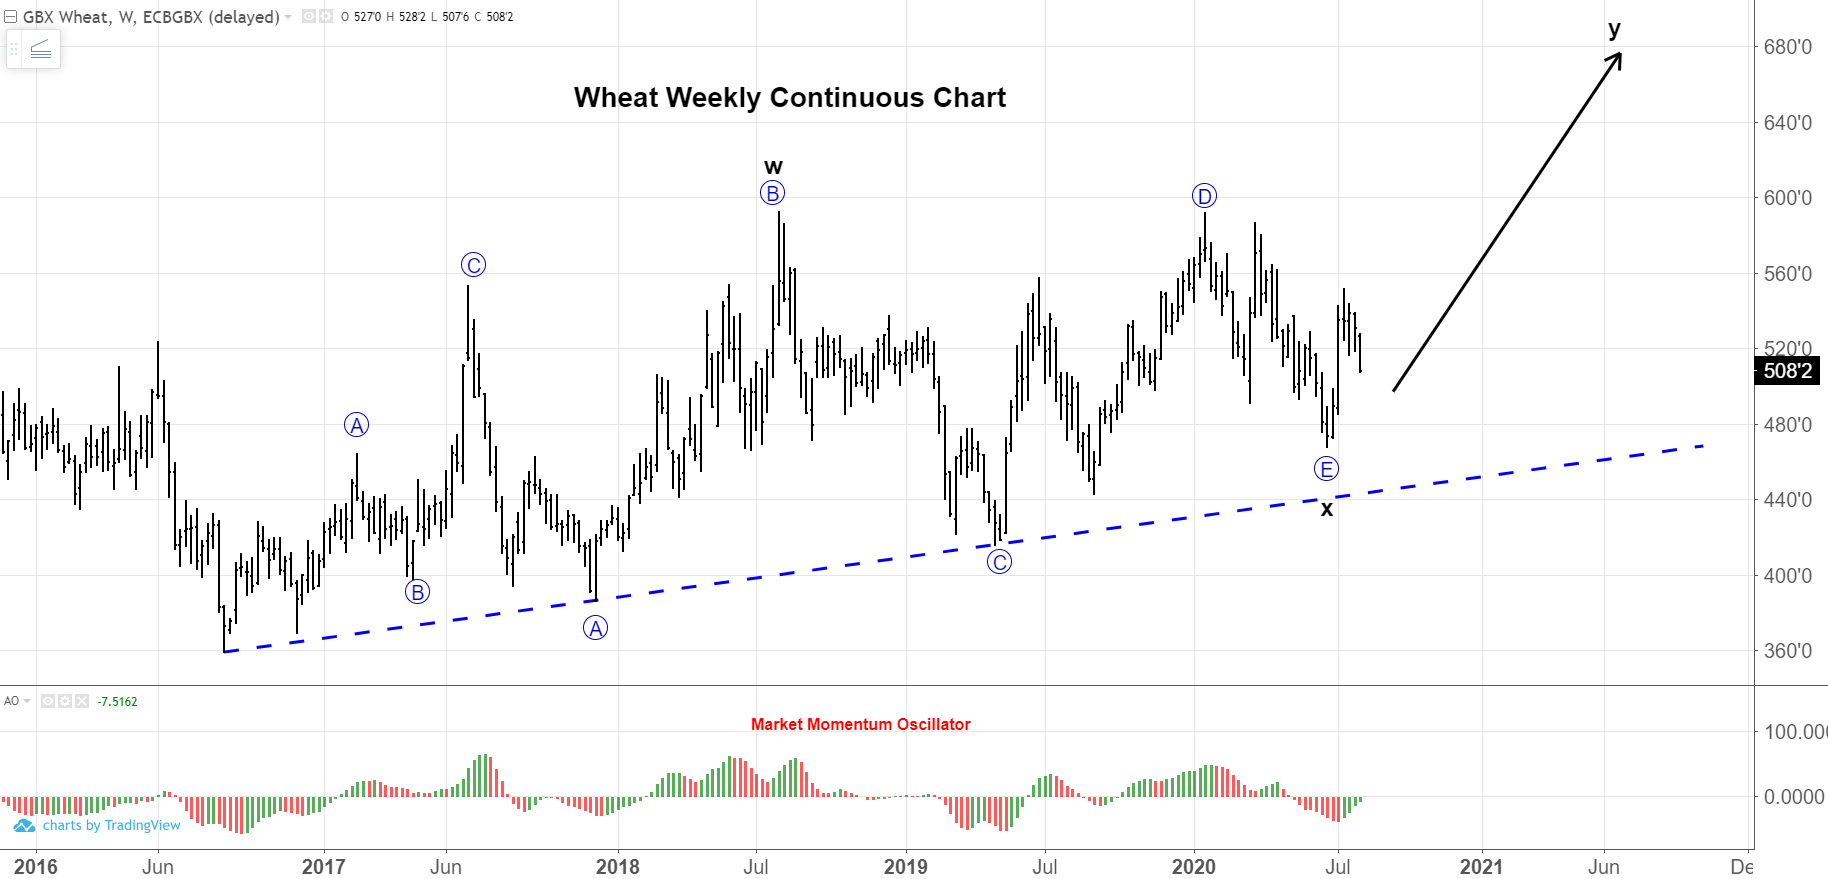 Weekly Continuous Wheat Chart